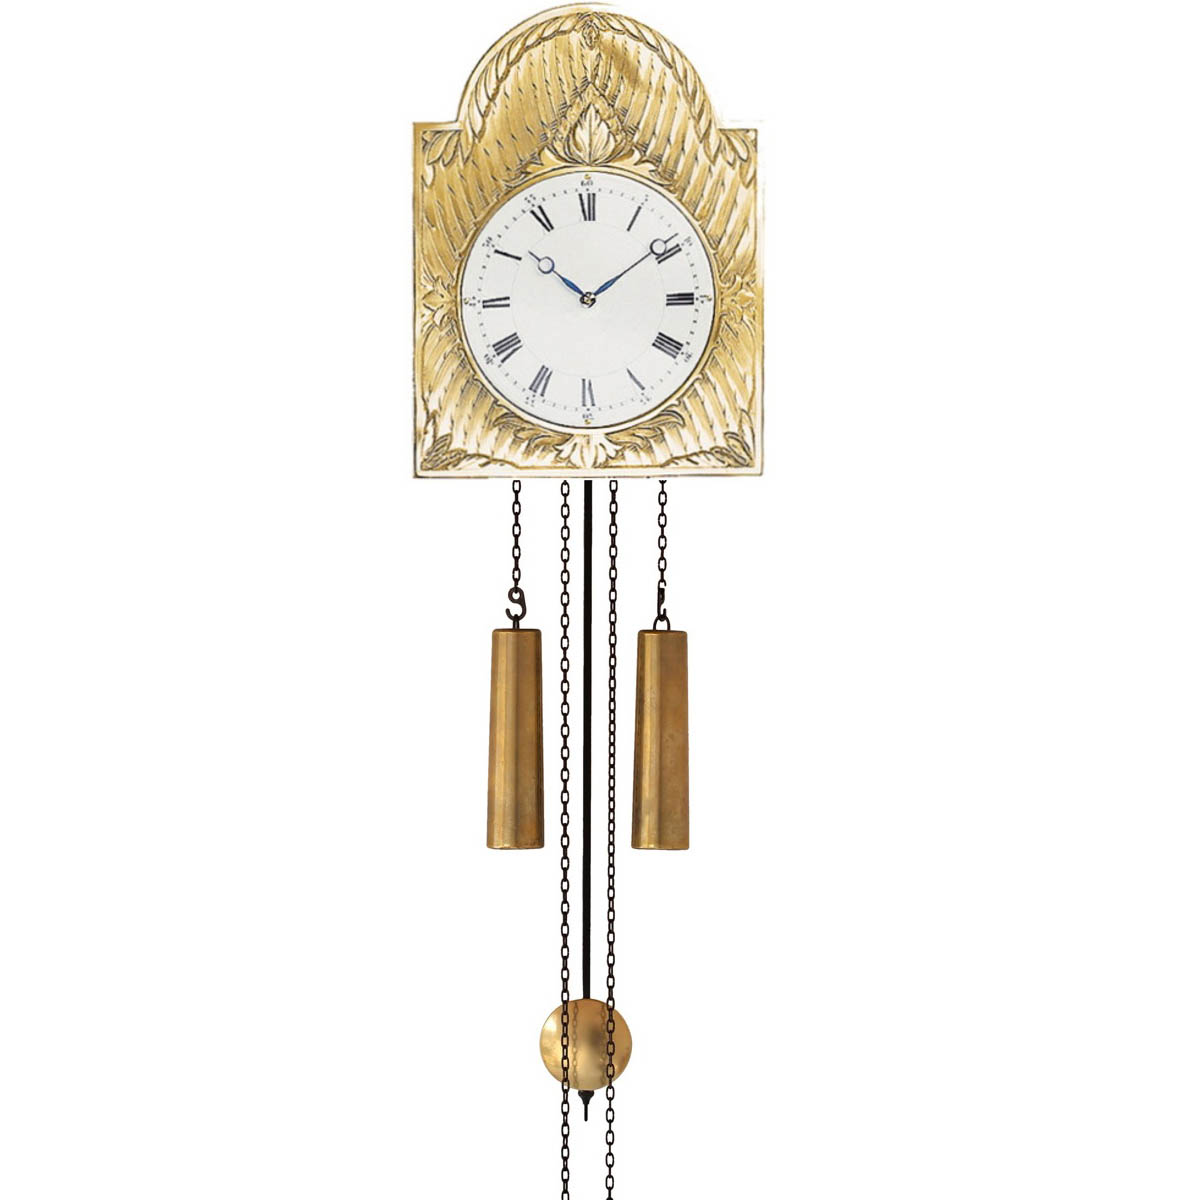 WU1140 Traditional Wall Clock